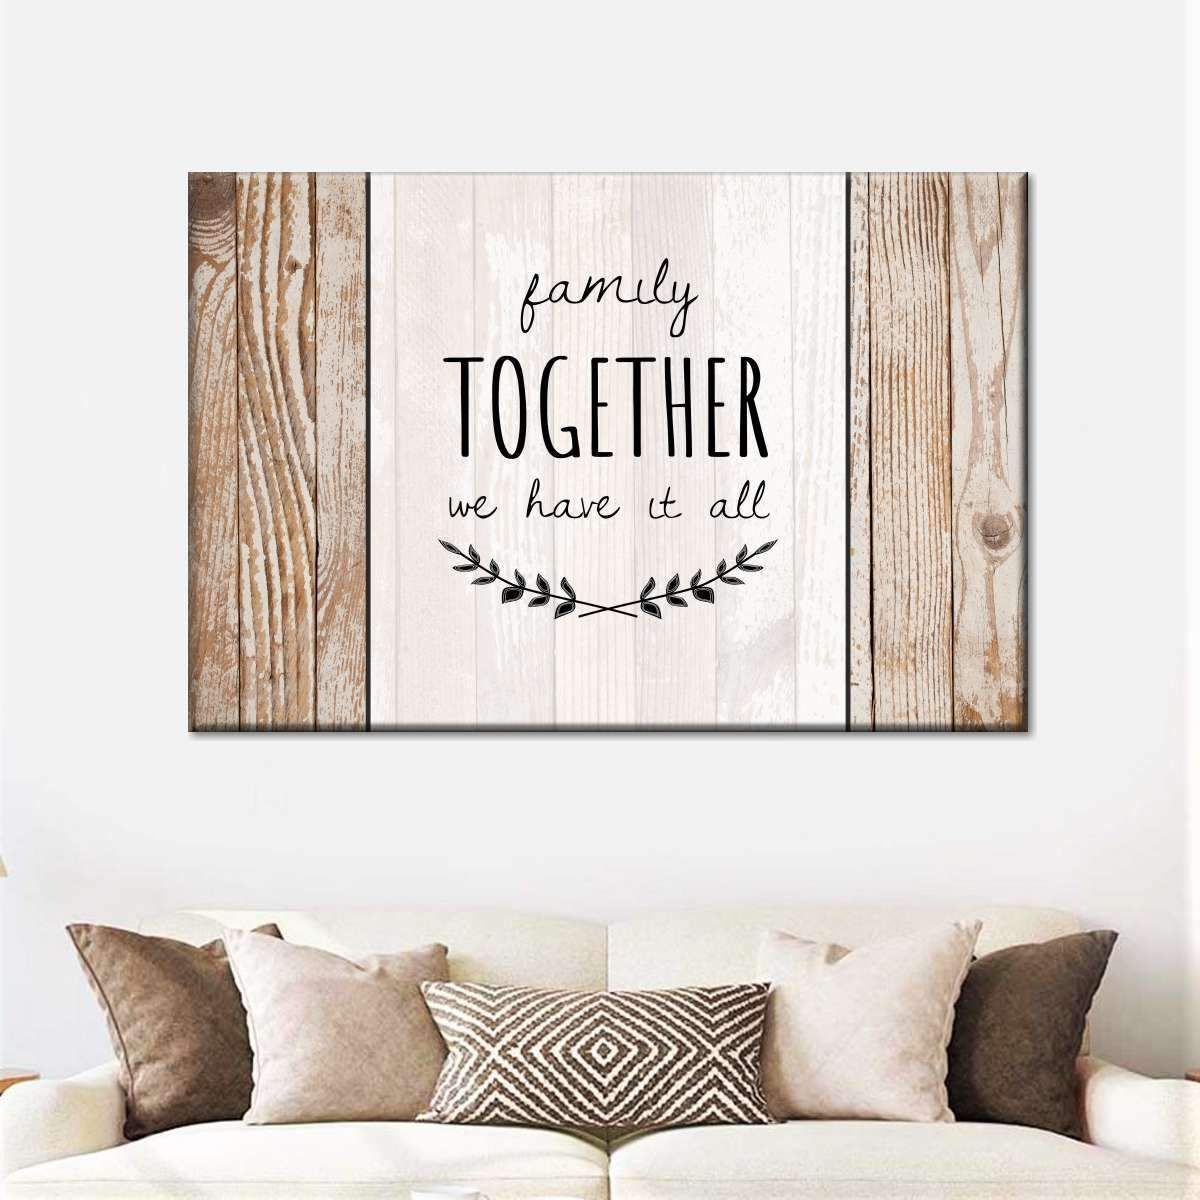 Family Together Canvas Wall Art In 2020 Family Wall Art Dining Room Wall Art Christian Wall Decor